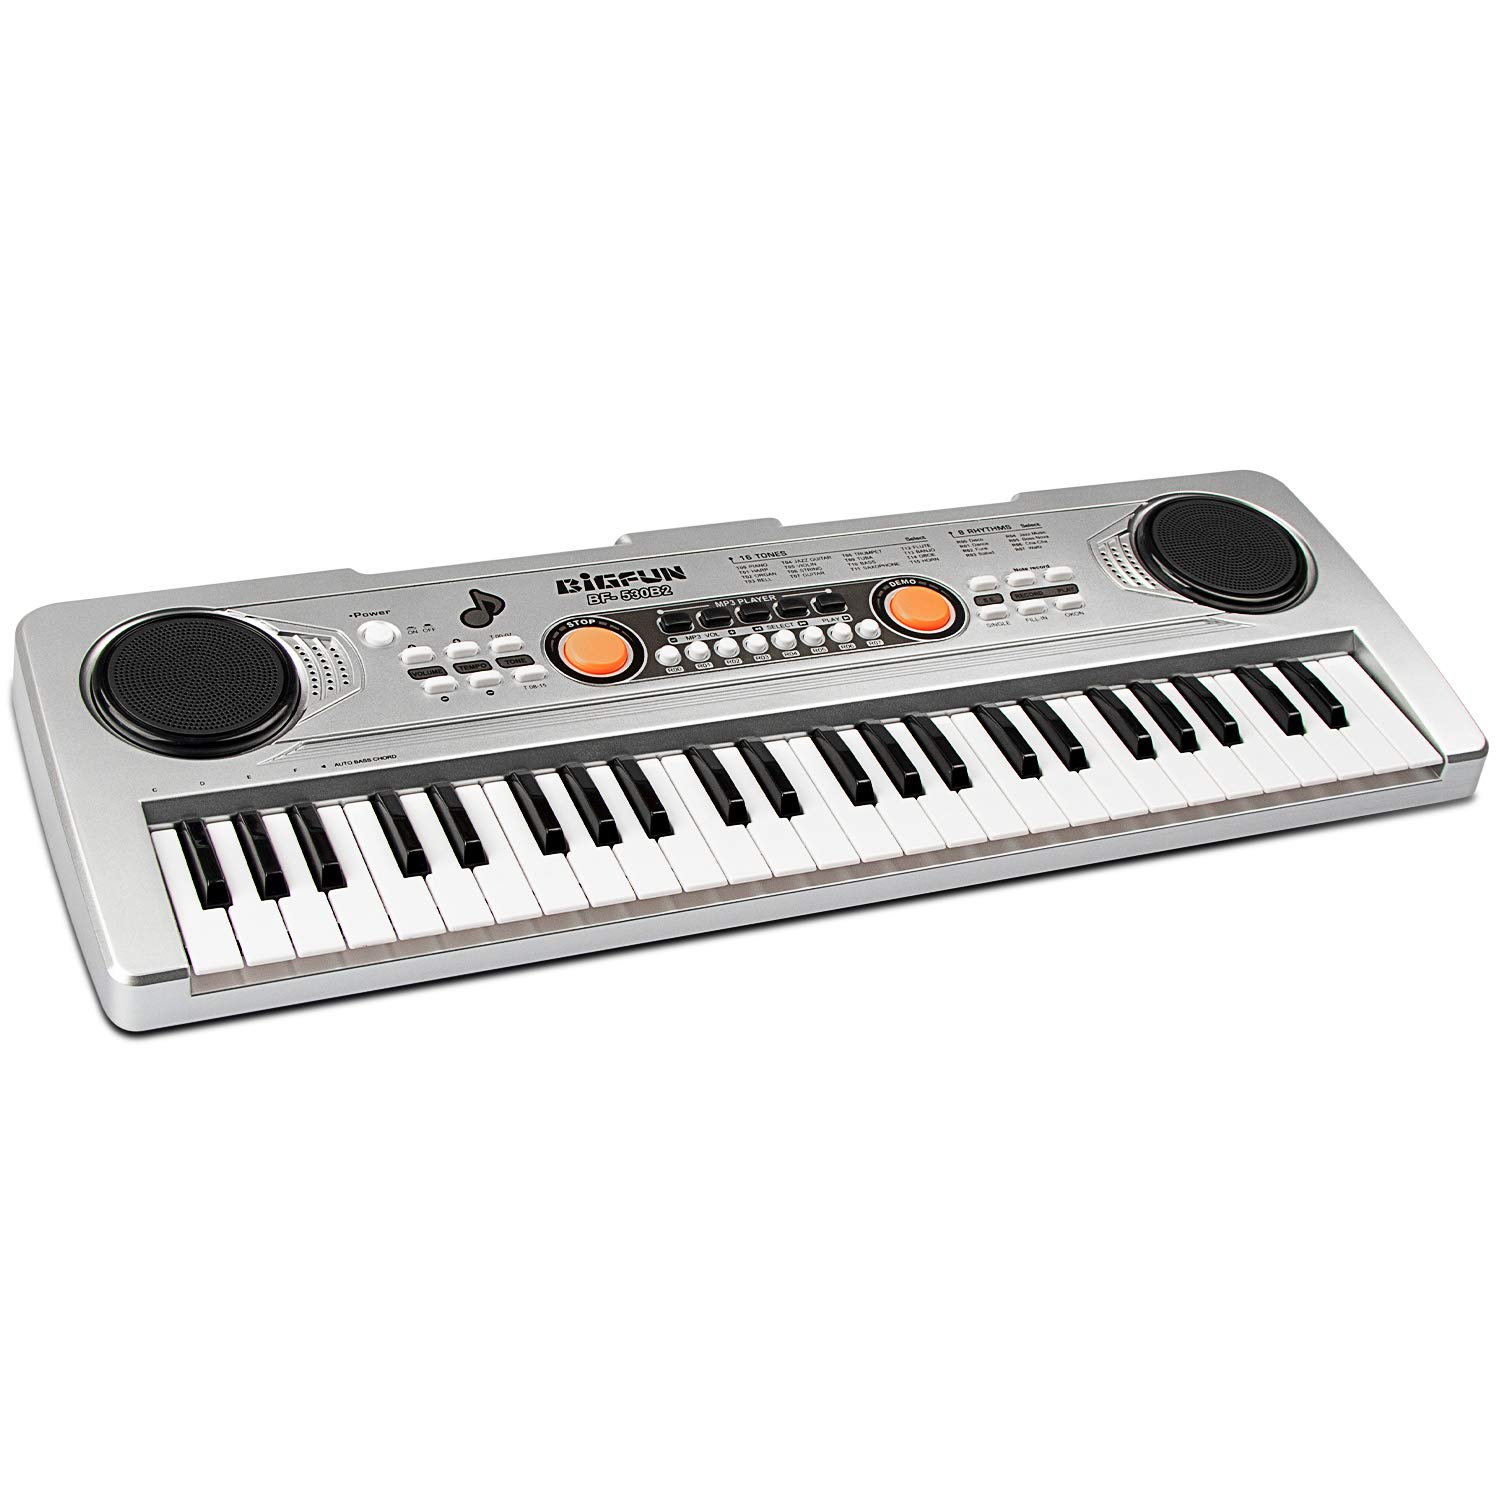 aPerfectLife 49 Keys Piano Keyboard for Kids Multifunction Portable Piano Electronic Keyboard Music Instrument for Kids Early Learning Educational Toy (Silver) by aPerfectLife